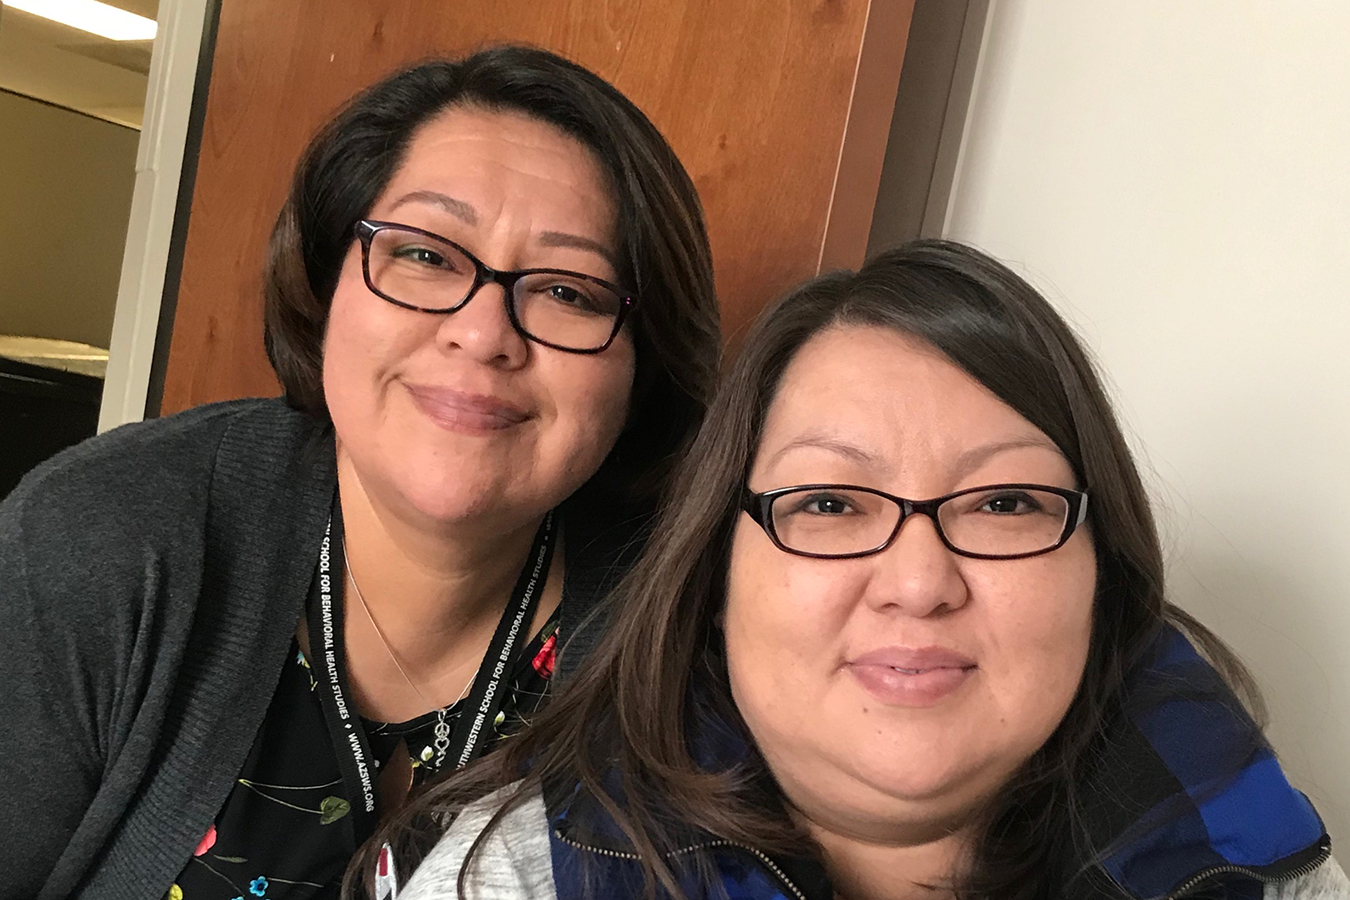 Two Navajo Sisters Who Were Inseparable Died of COVID Just Weeks Apart